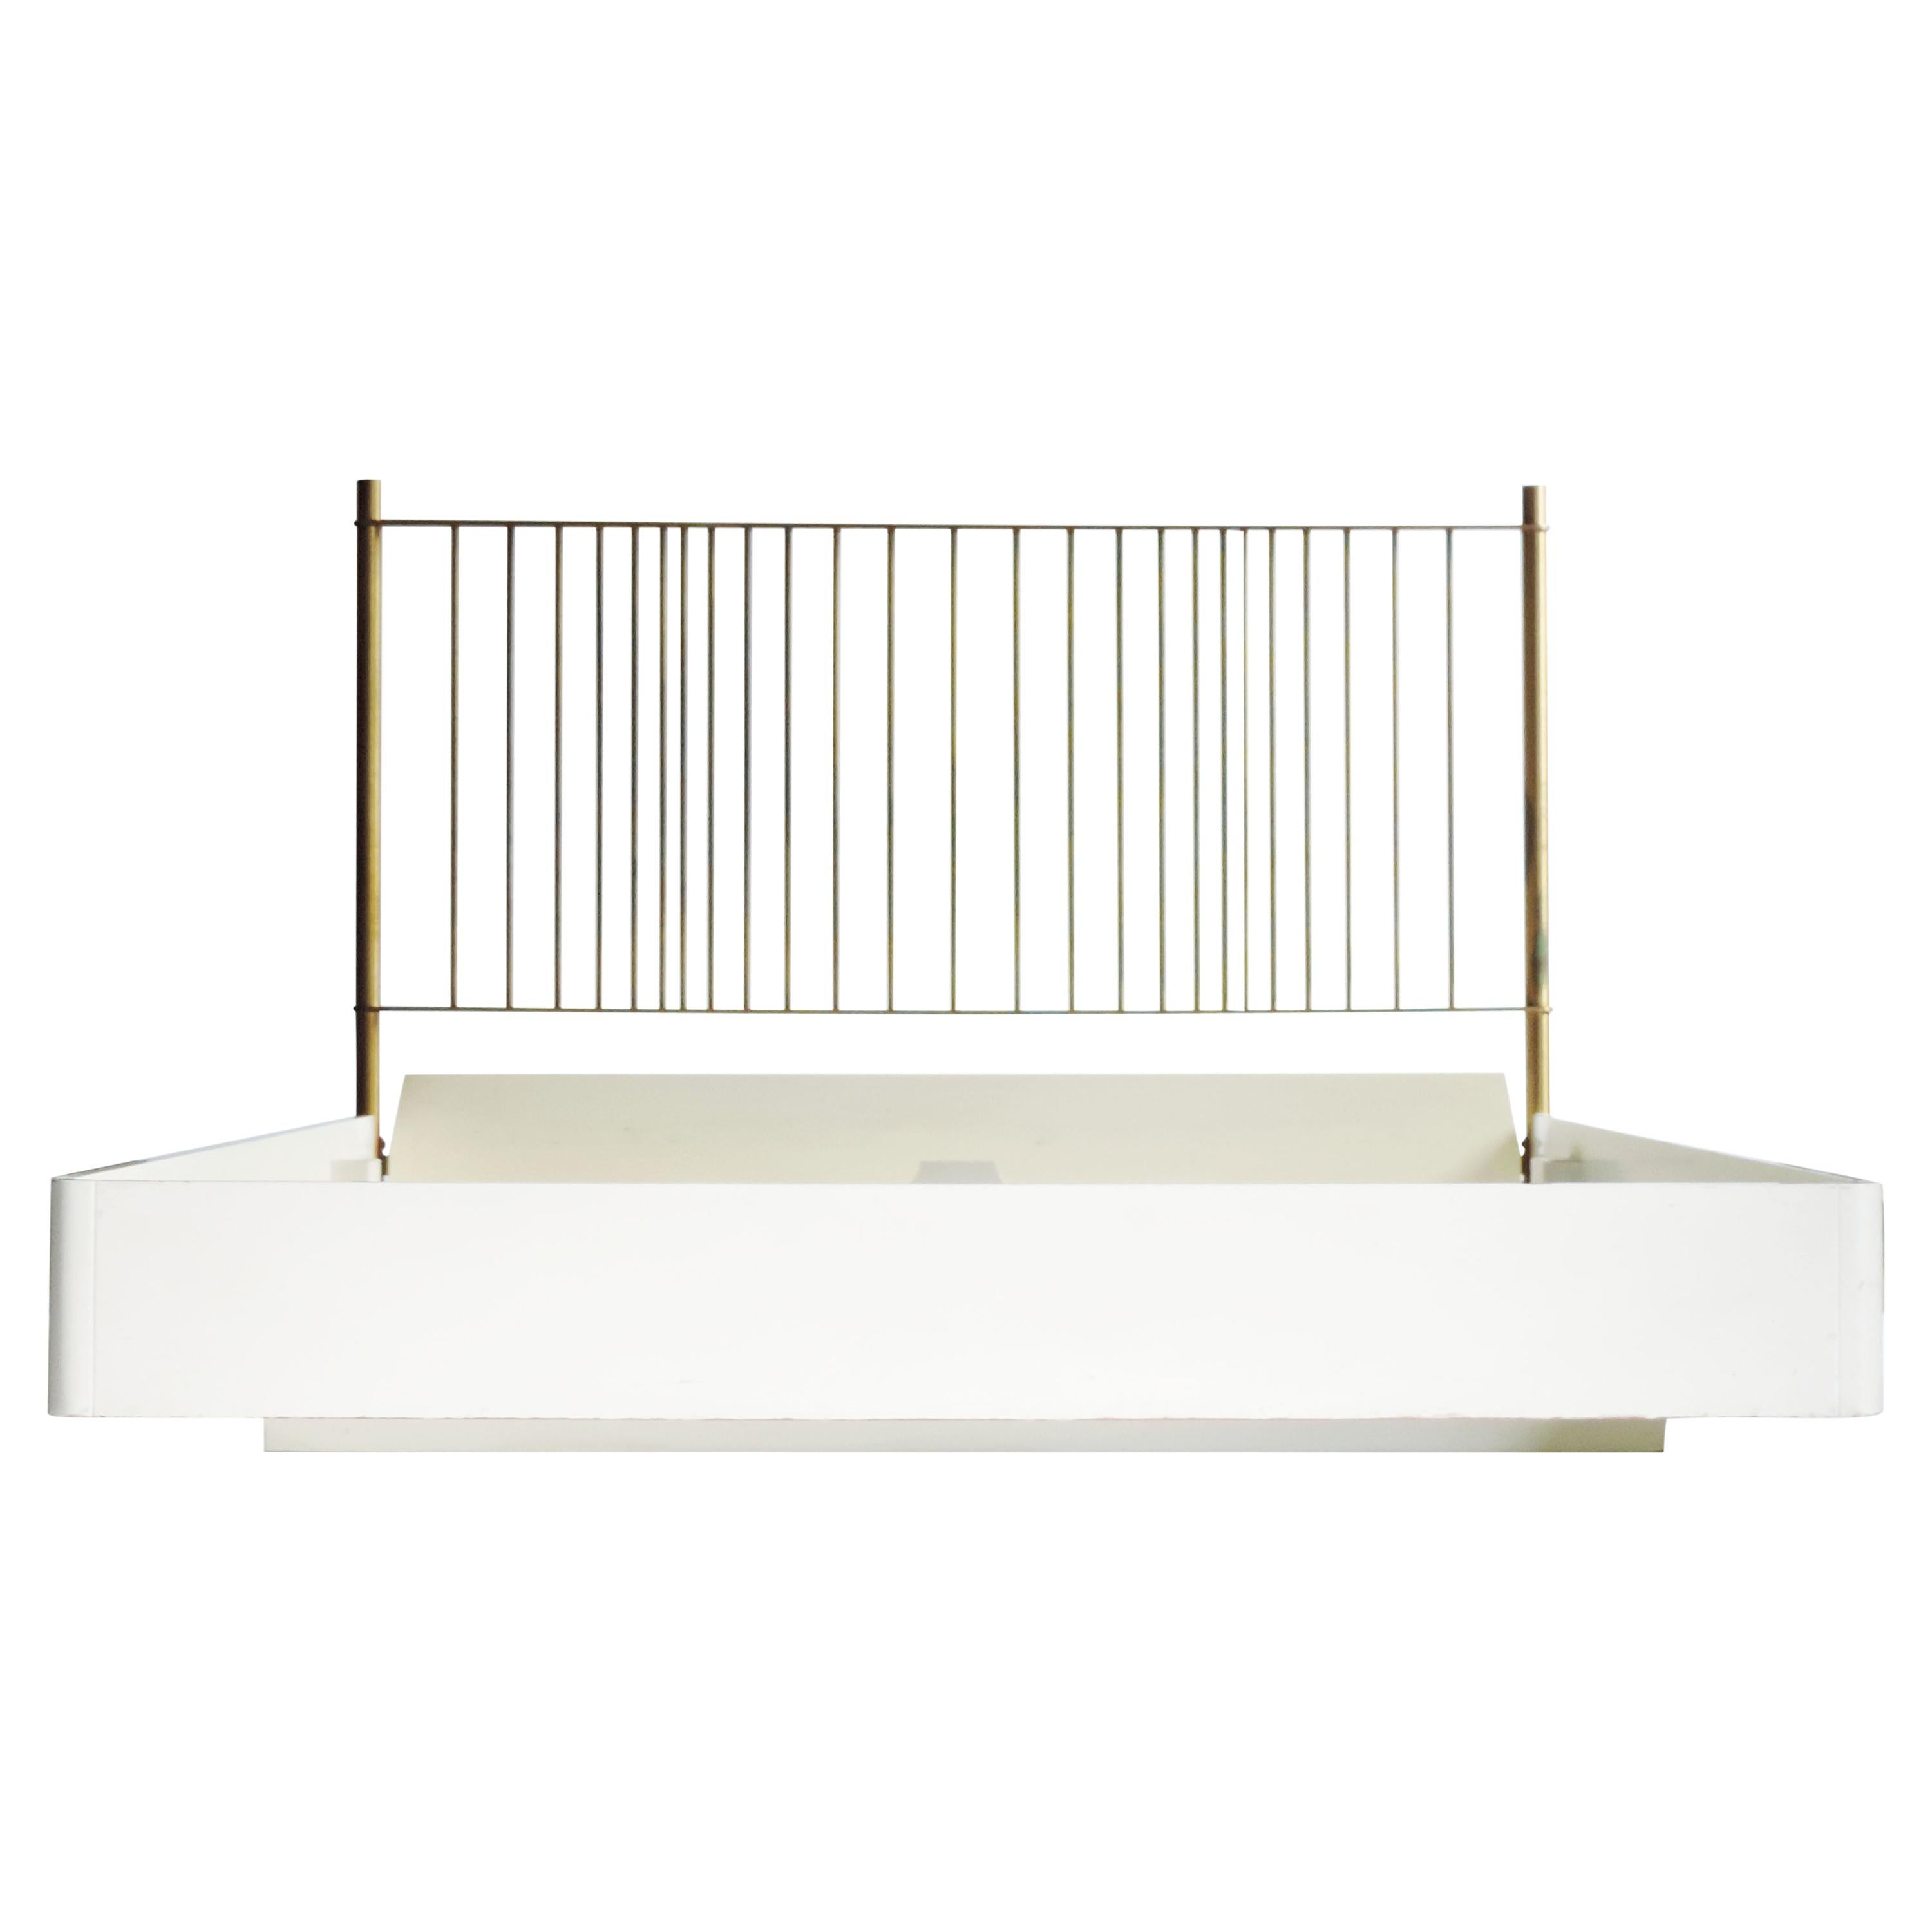 Franco Albini & Franca Helg 'Mirage' Brass Double Bed for Frigerio, Italy, 1970s